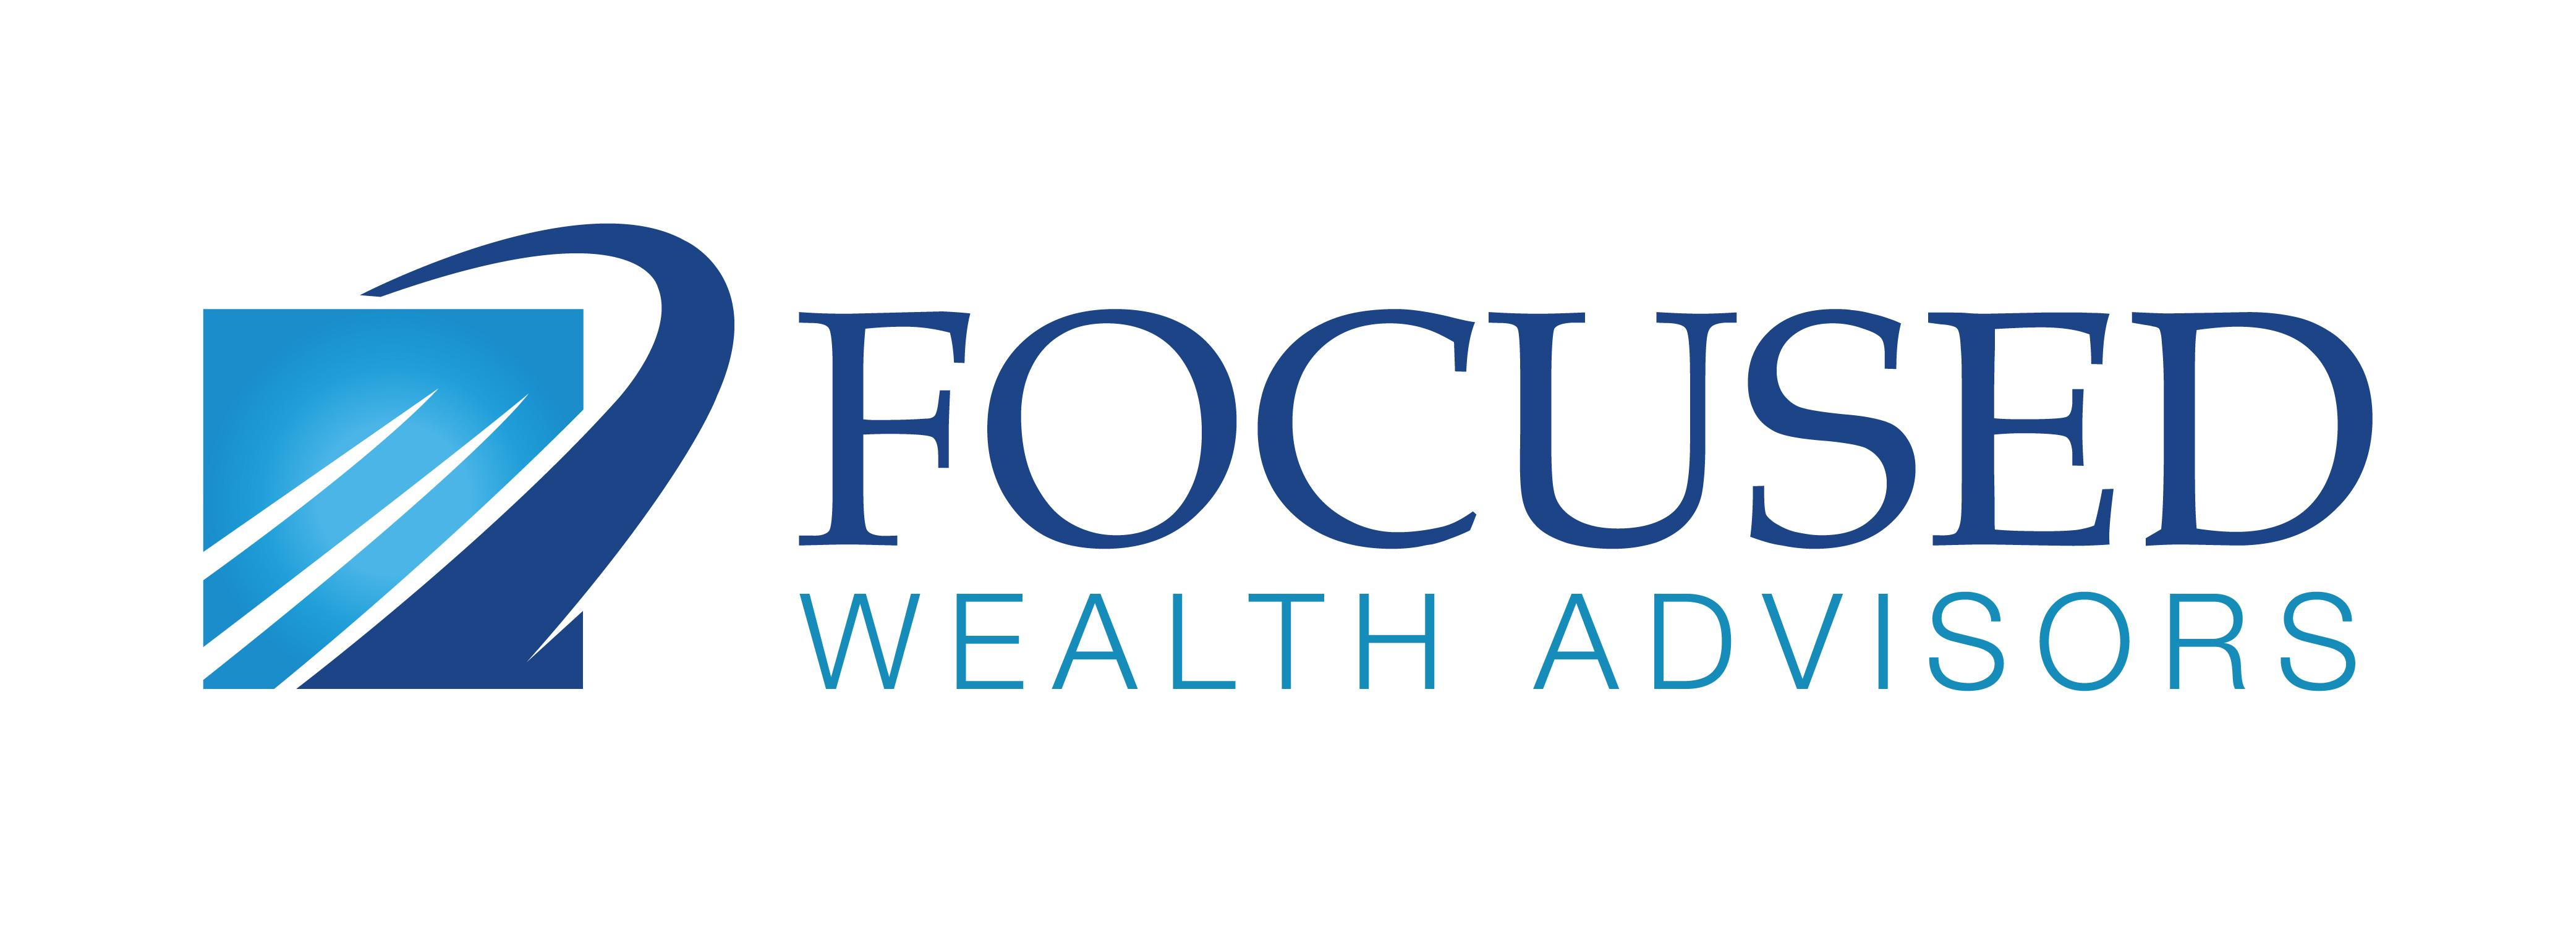 Focused Wealth Advisors